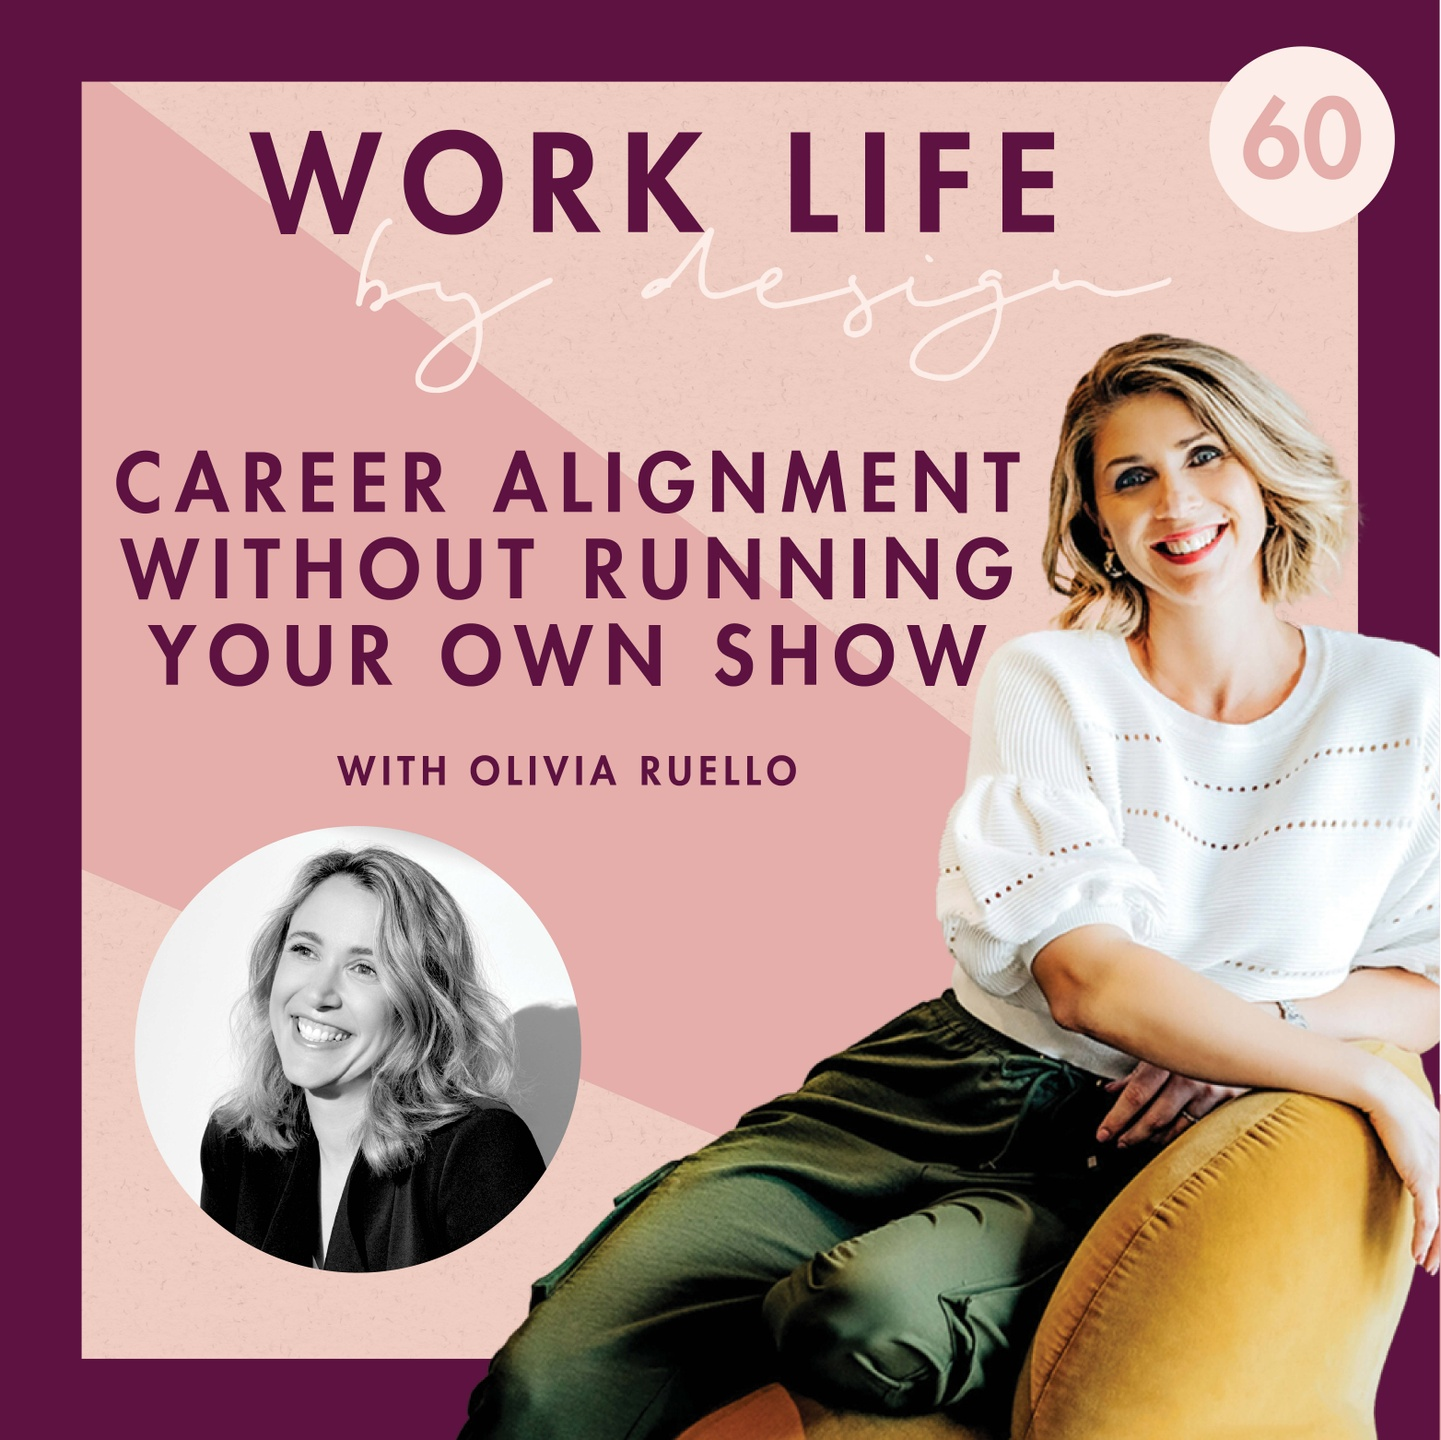 Career Alignment Without Running Your Own Show with Olivia Ruello   Melissa Marsden Work Life By Design Podcast